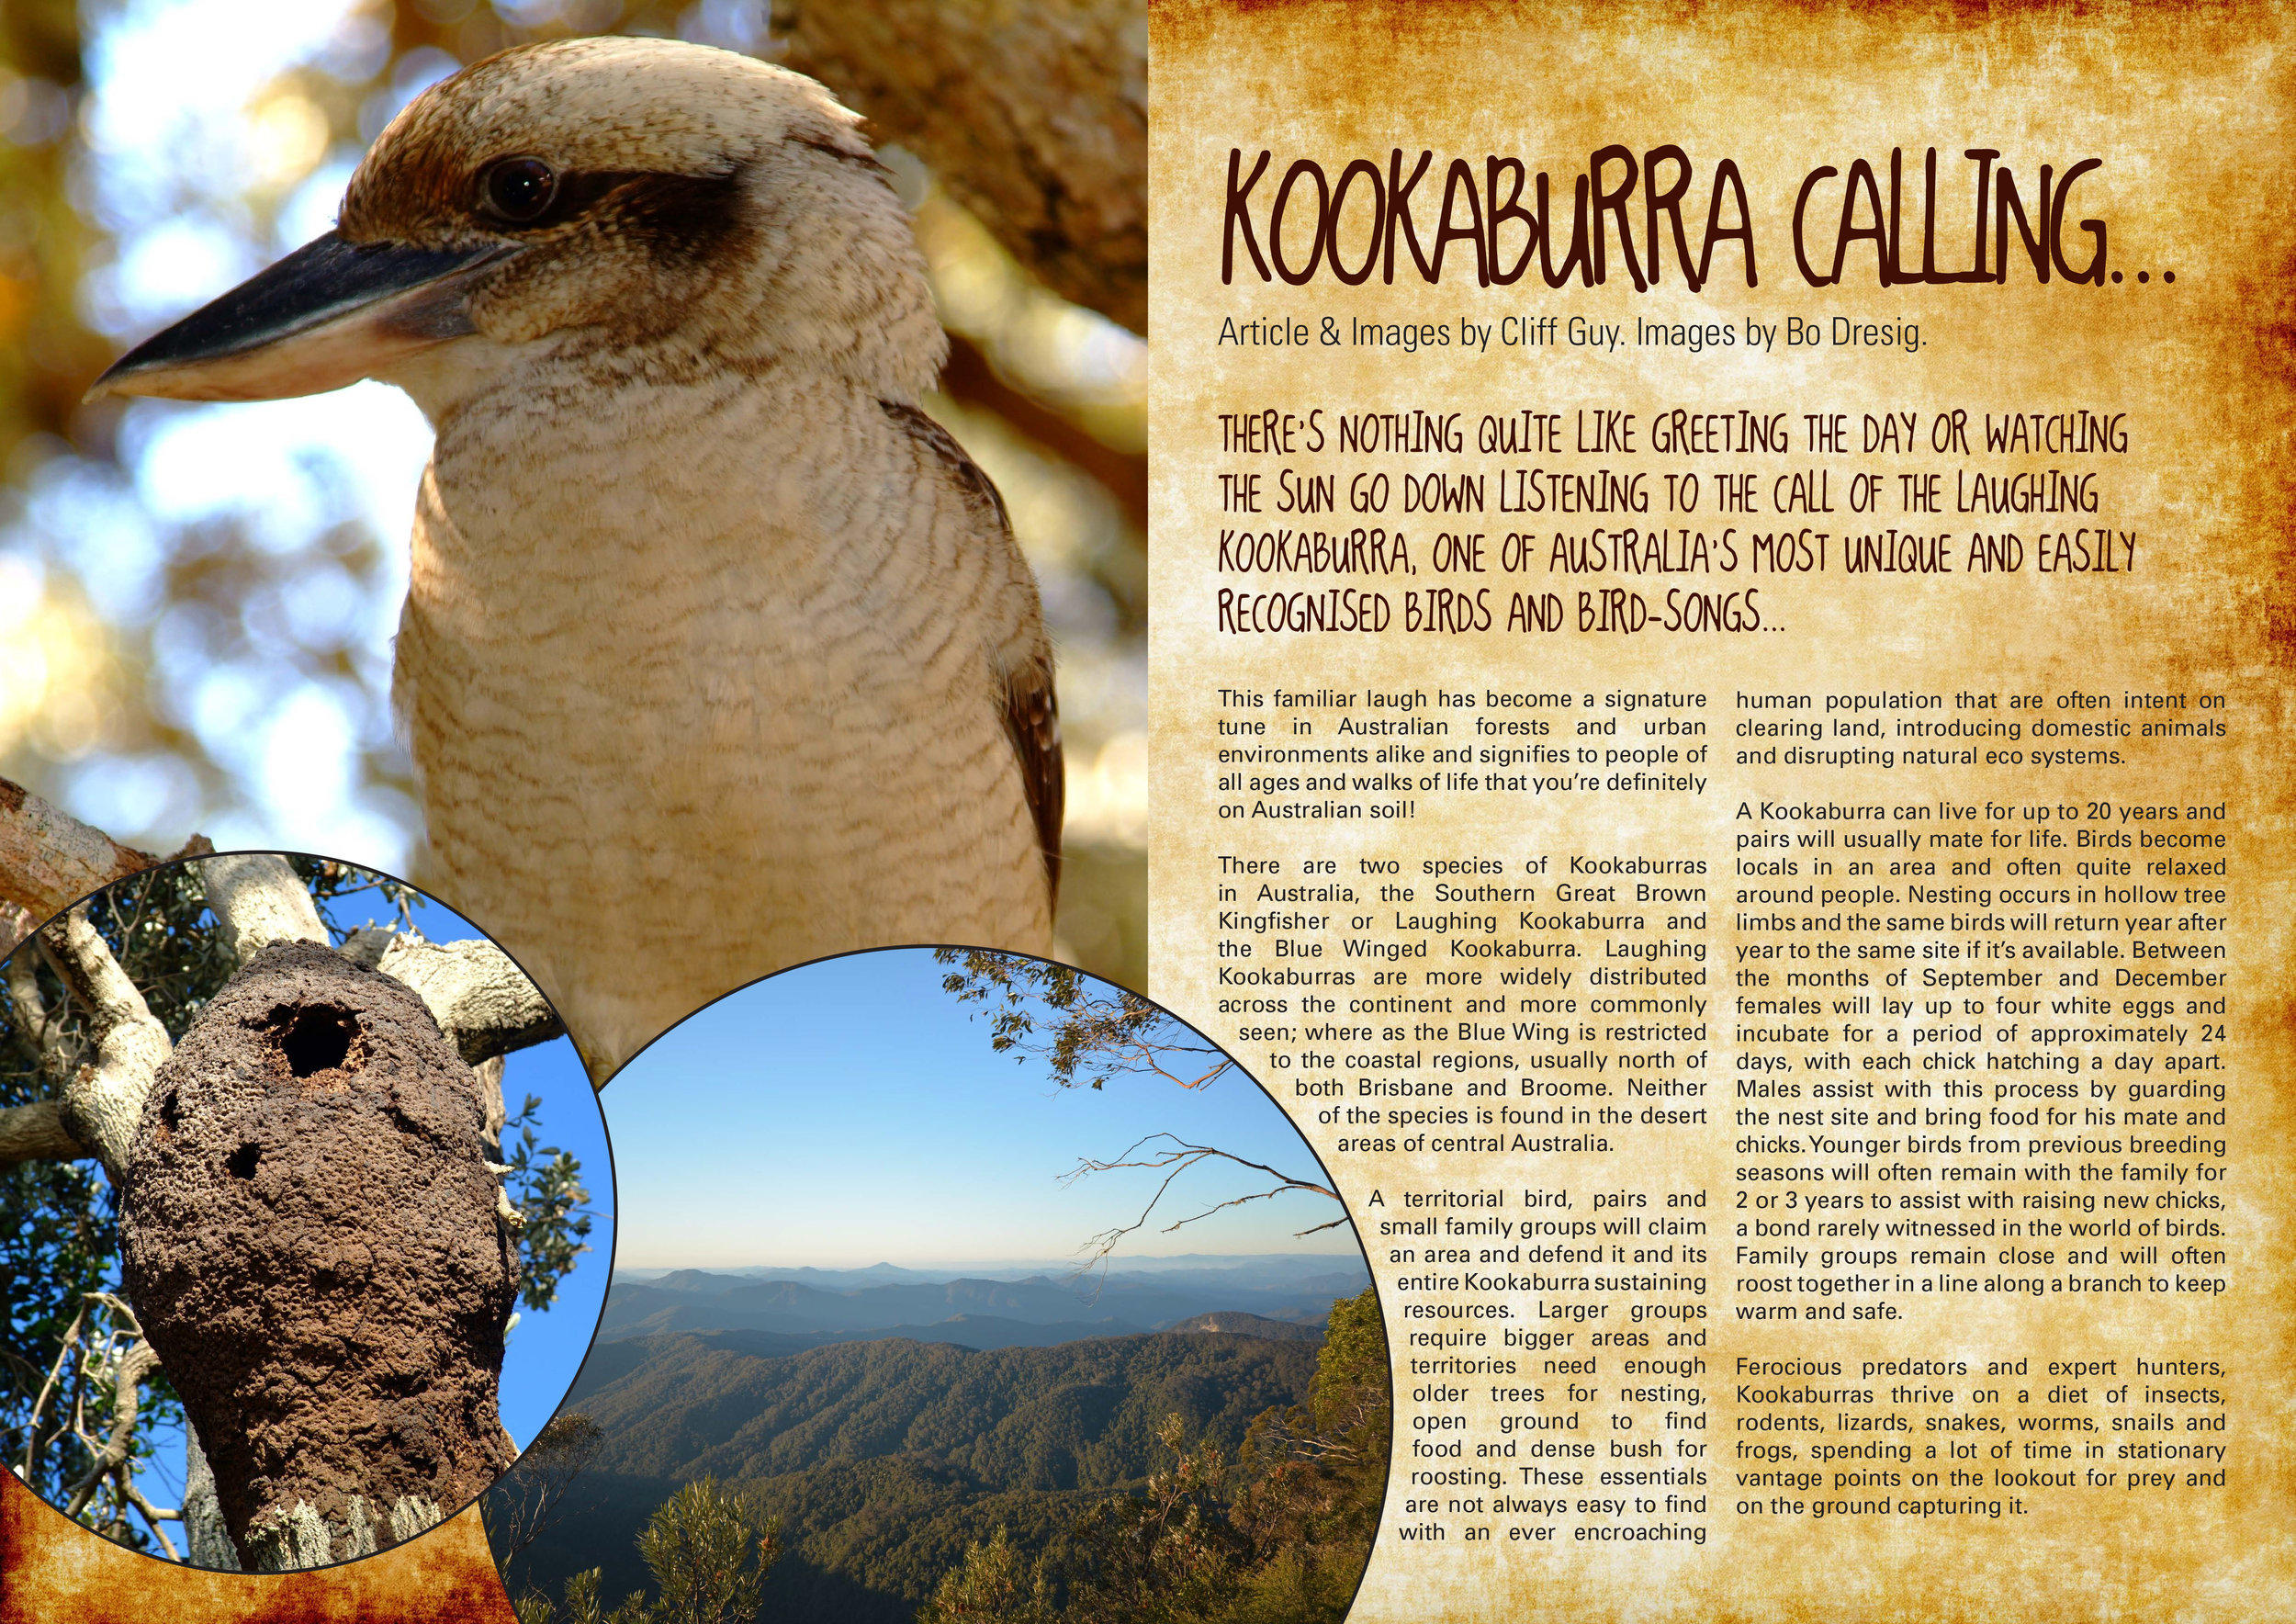 KookaburraCalling-1.jpg